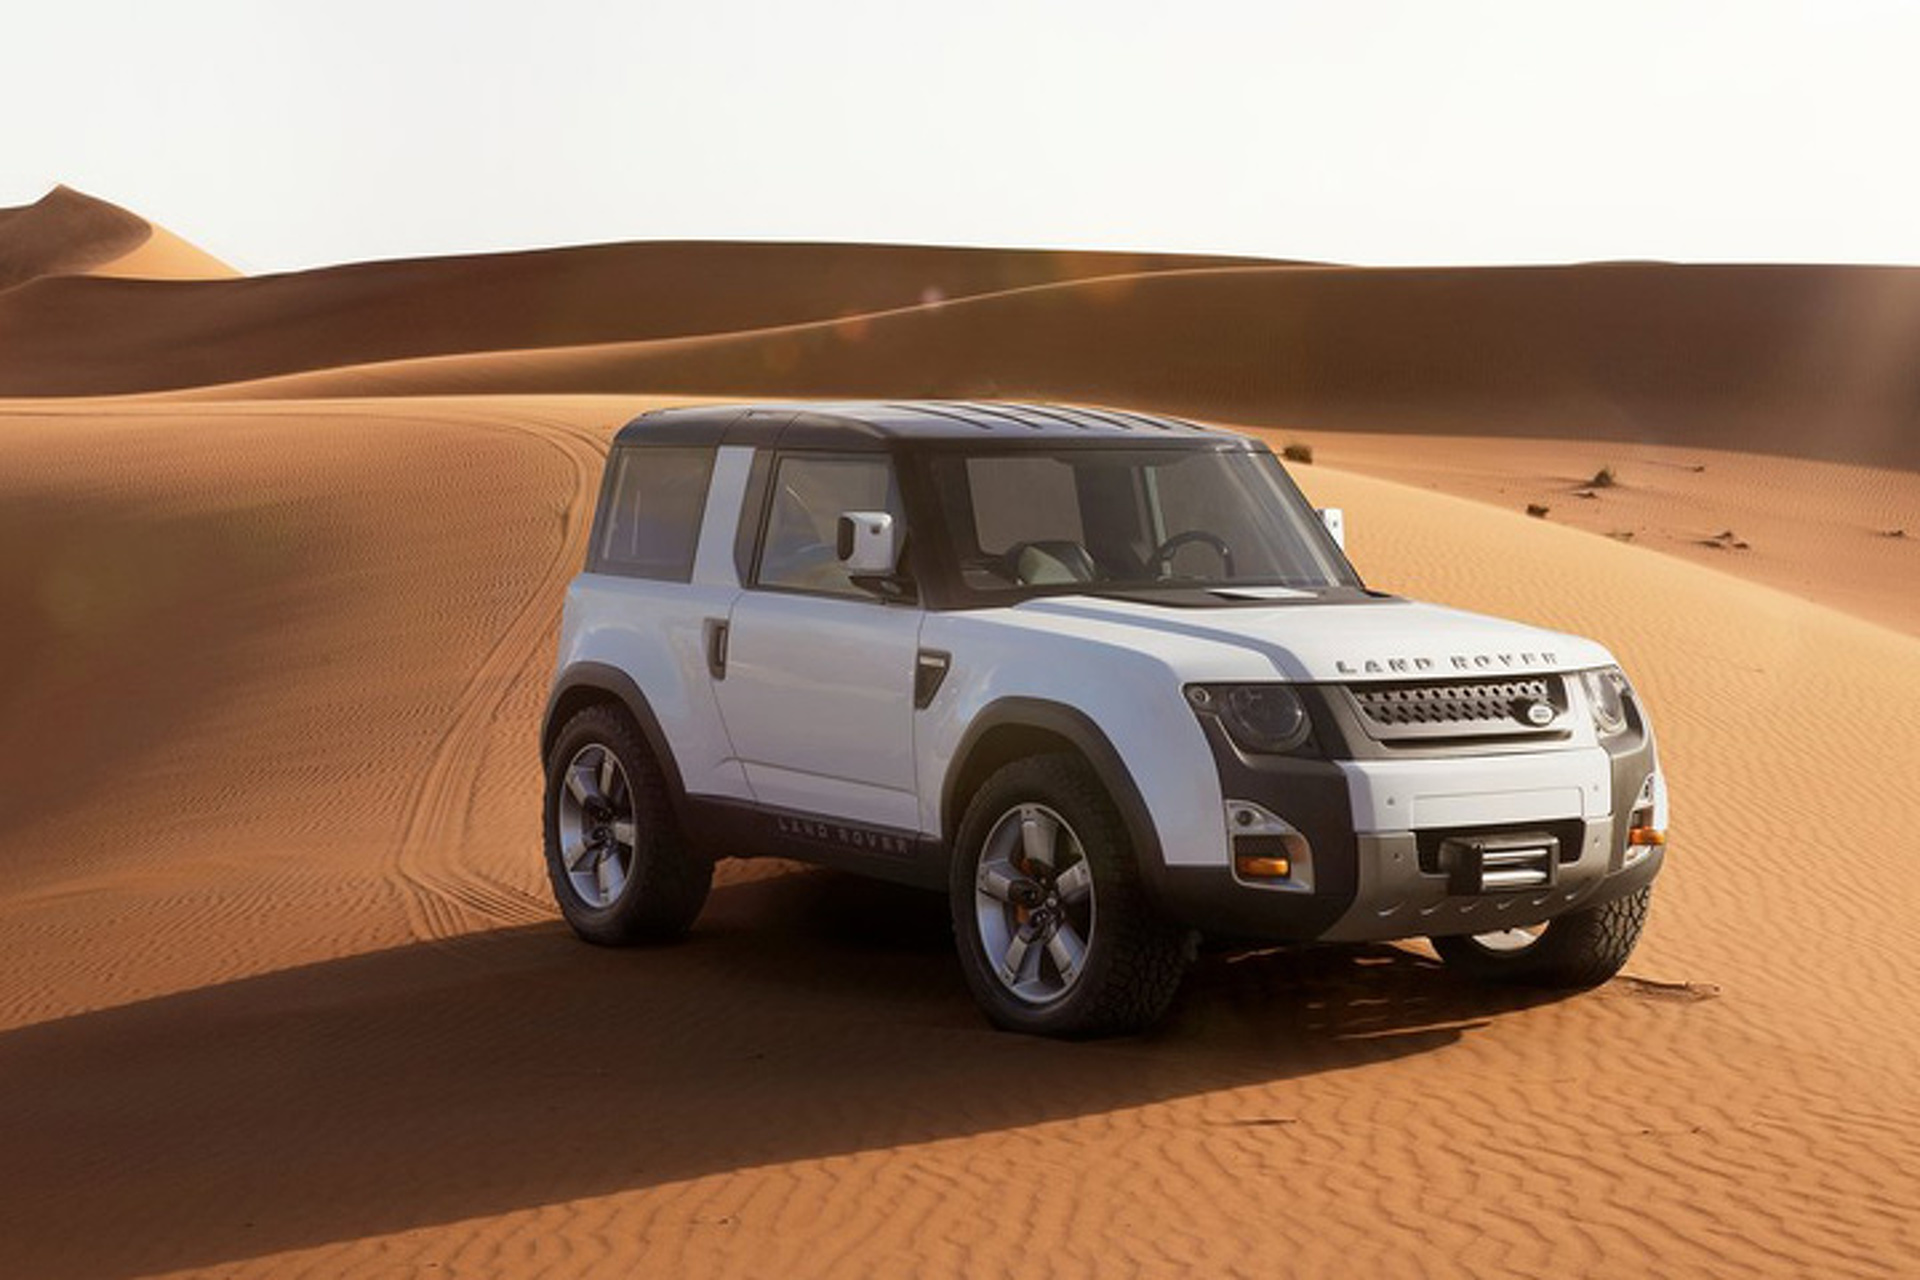 Land Rover Finalizes Look of Next-Gen Defender